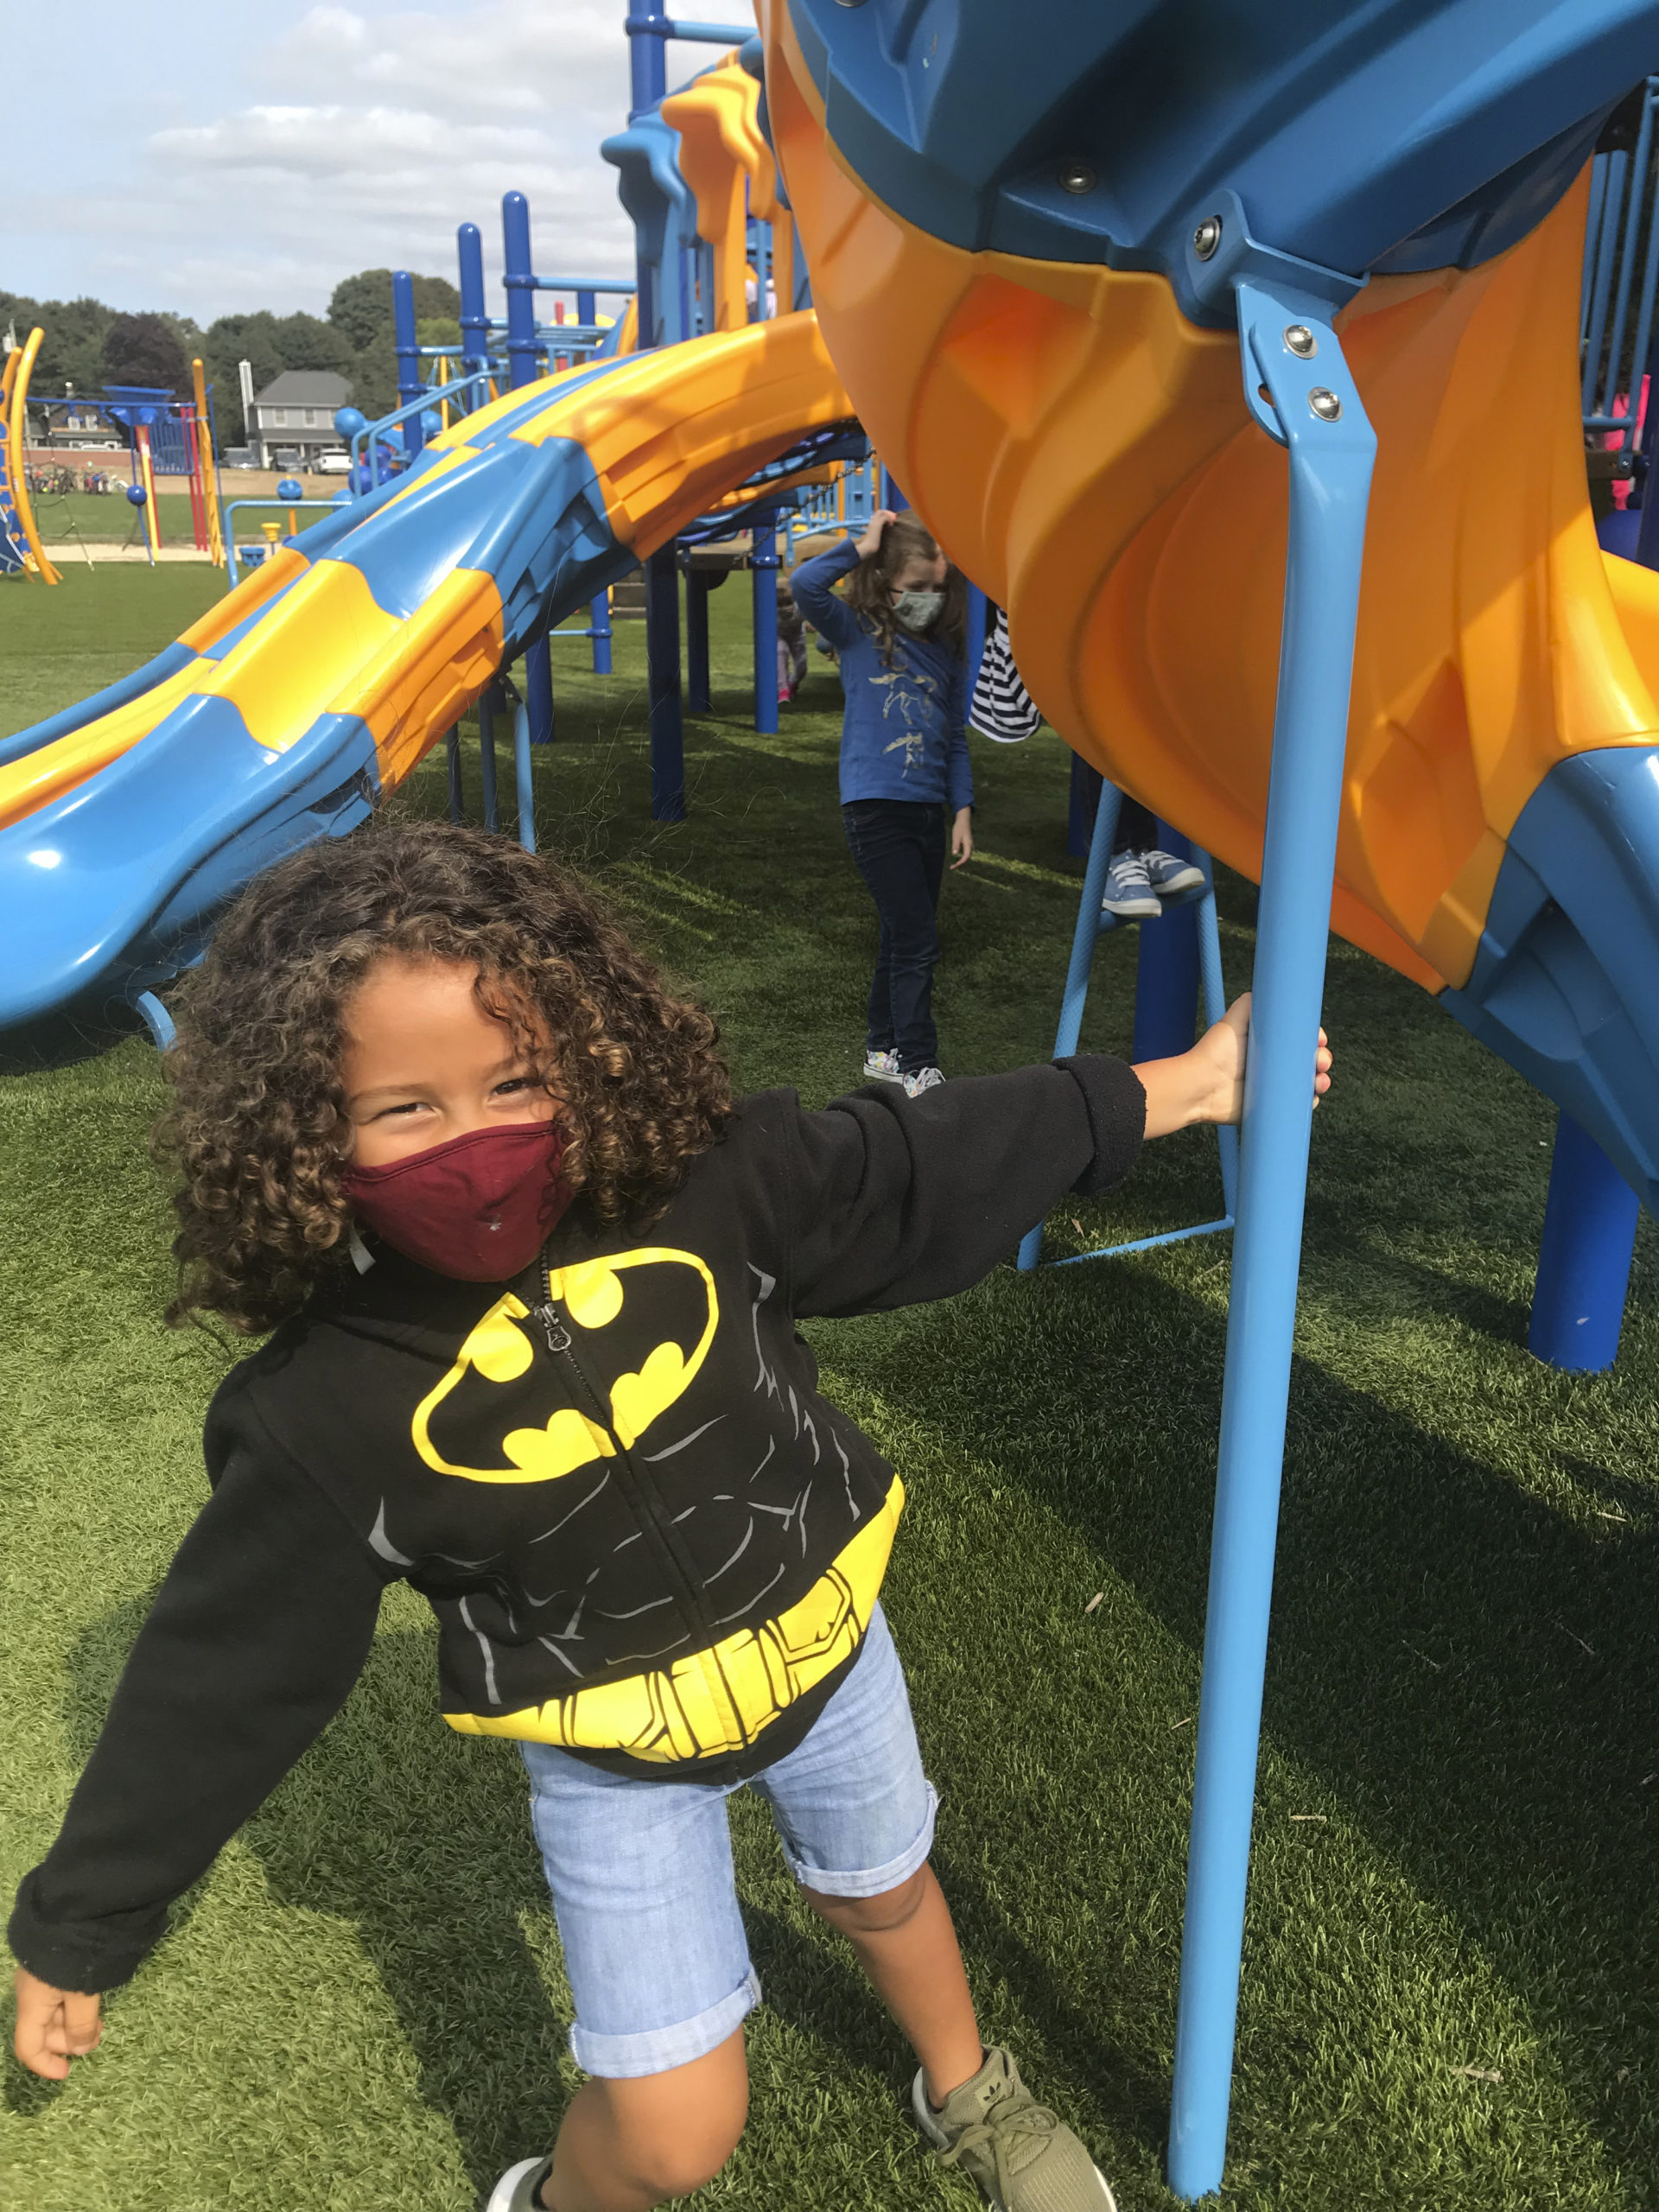 East Quogue School kindgergartner Aaron Marte enjoying the outdoors and having fun on the playground. Courtesy East Quogue School District